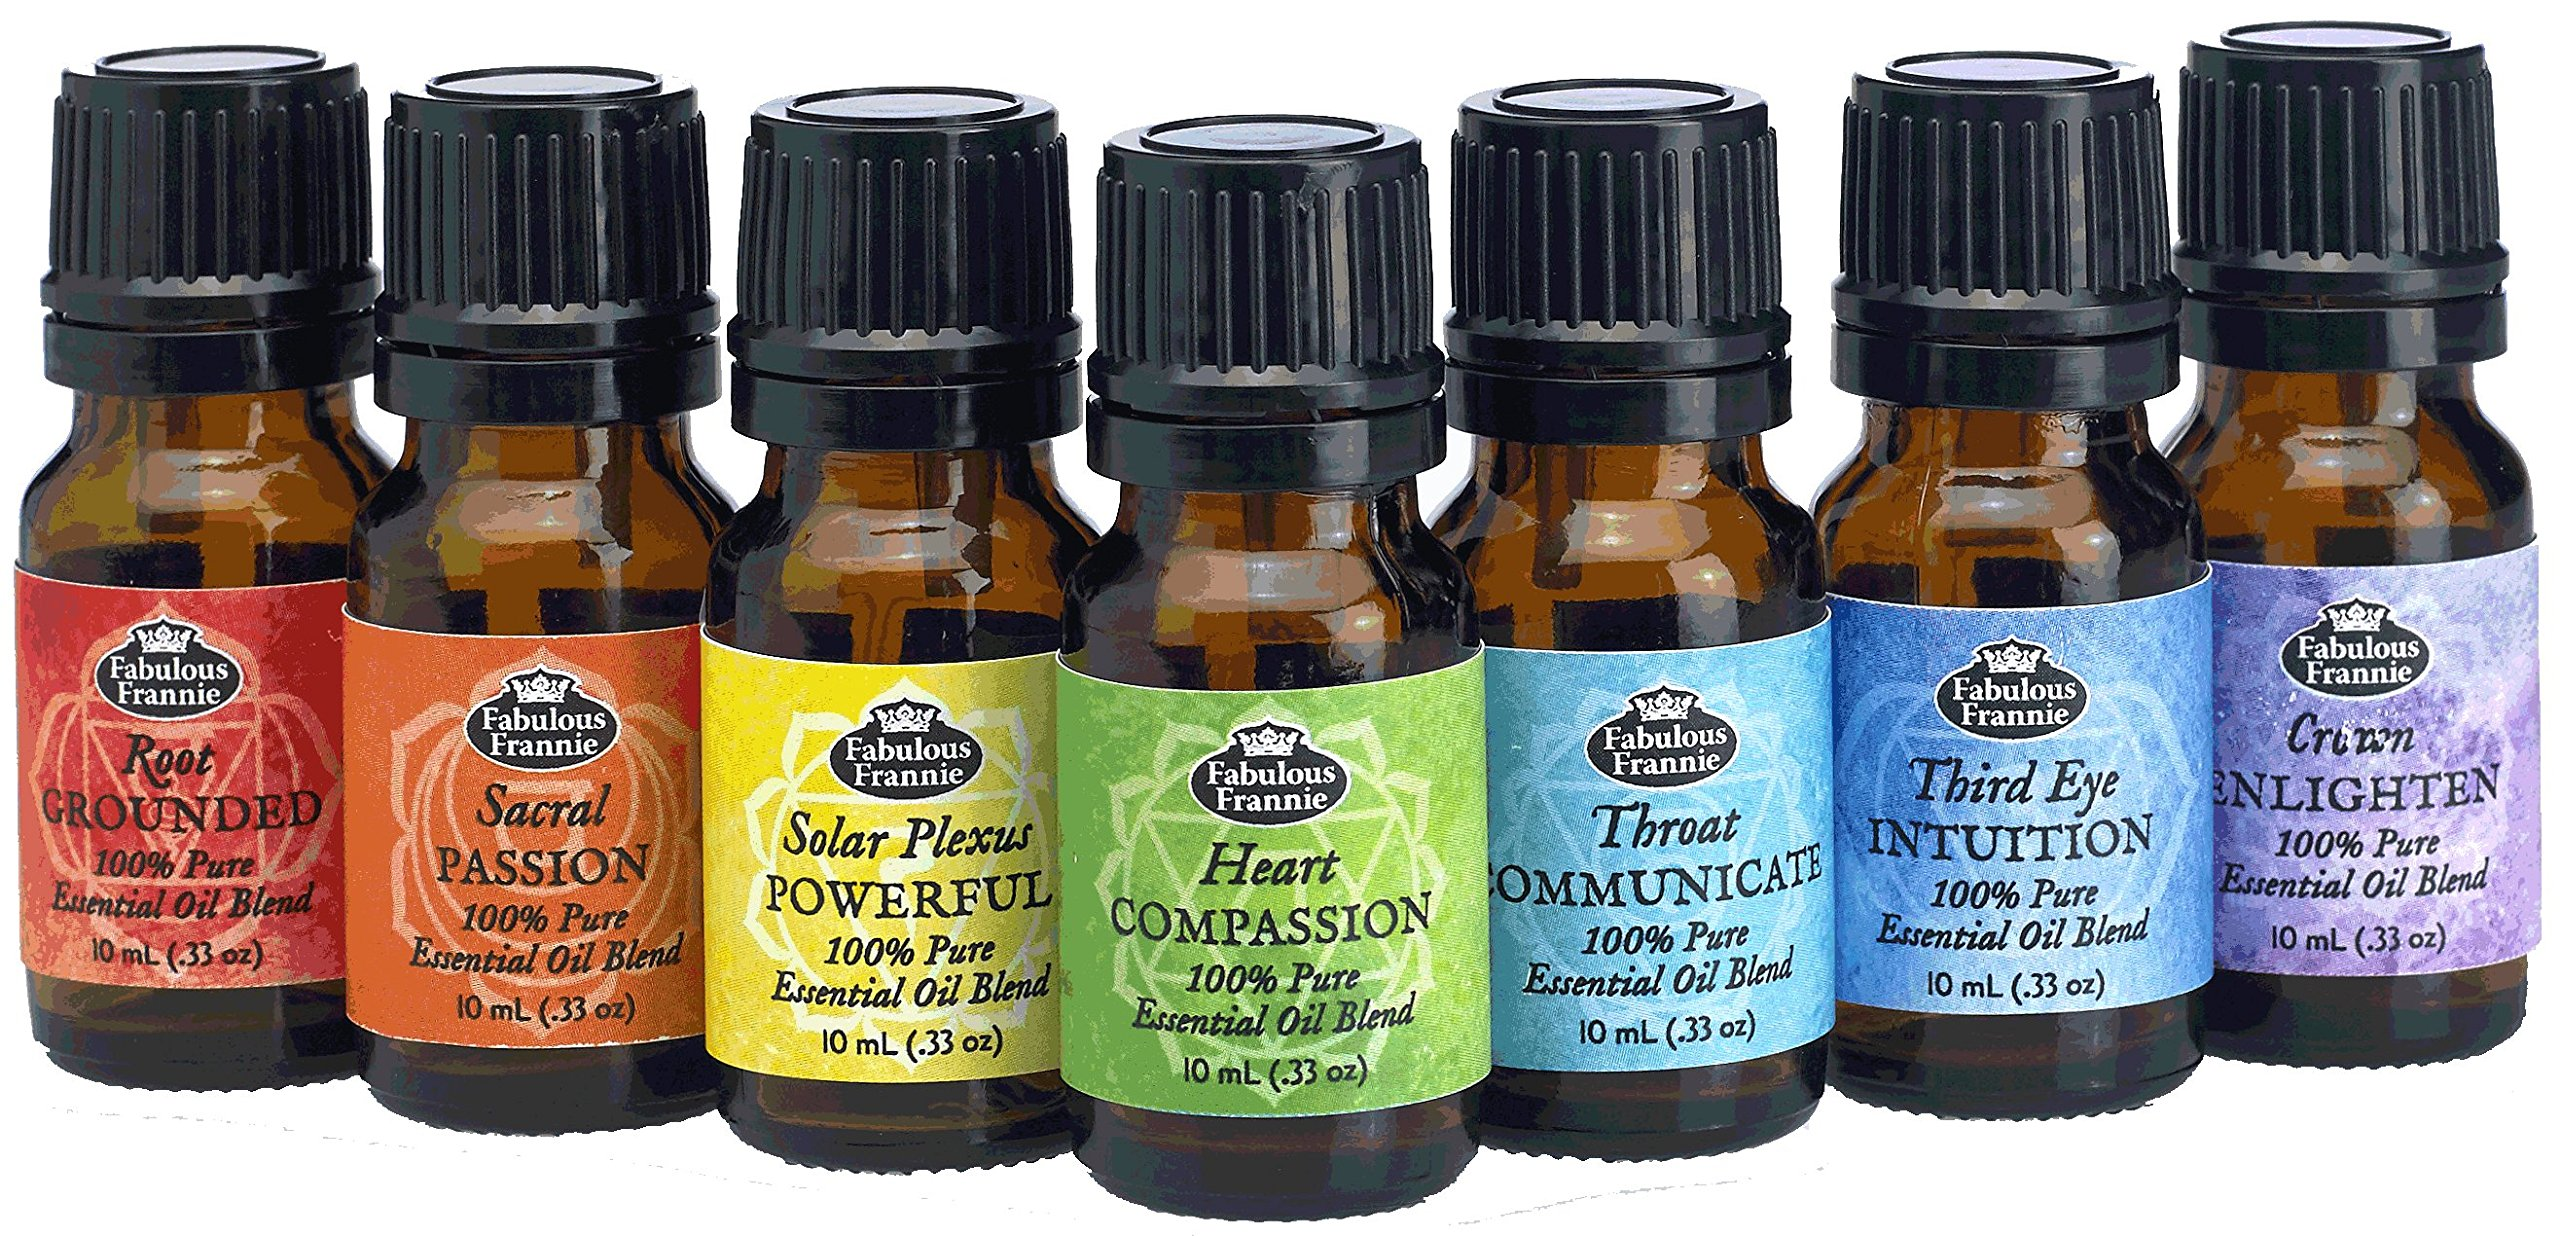 Chakra Complete Set of 7 Pure Essential Oil Blends - .33oz